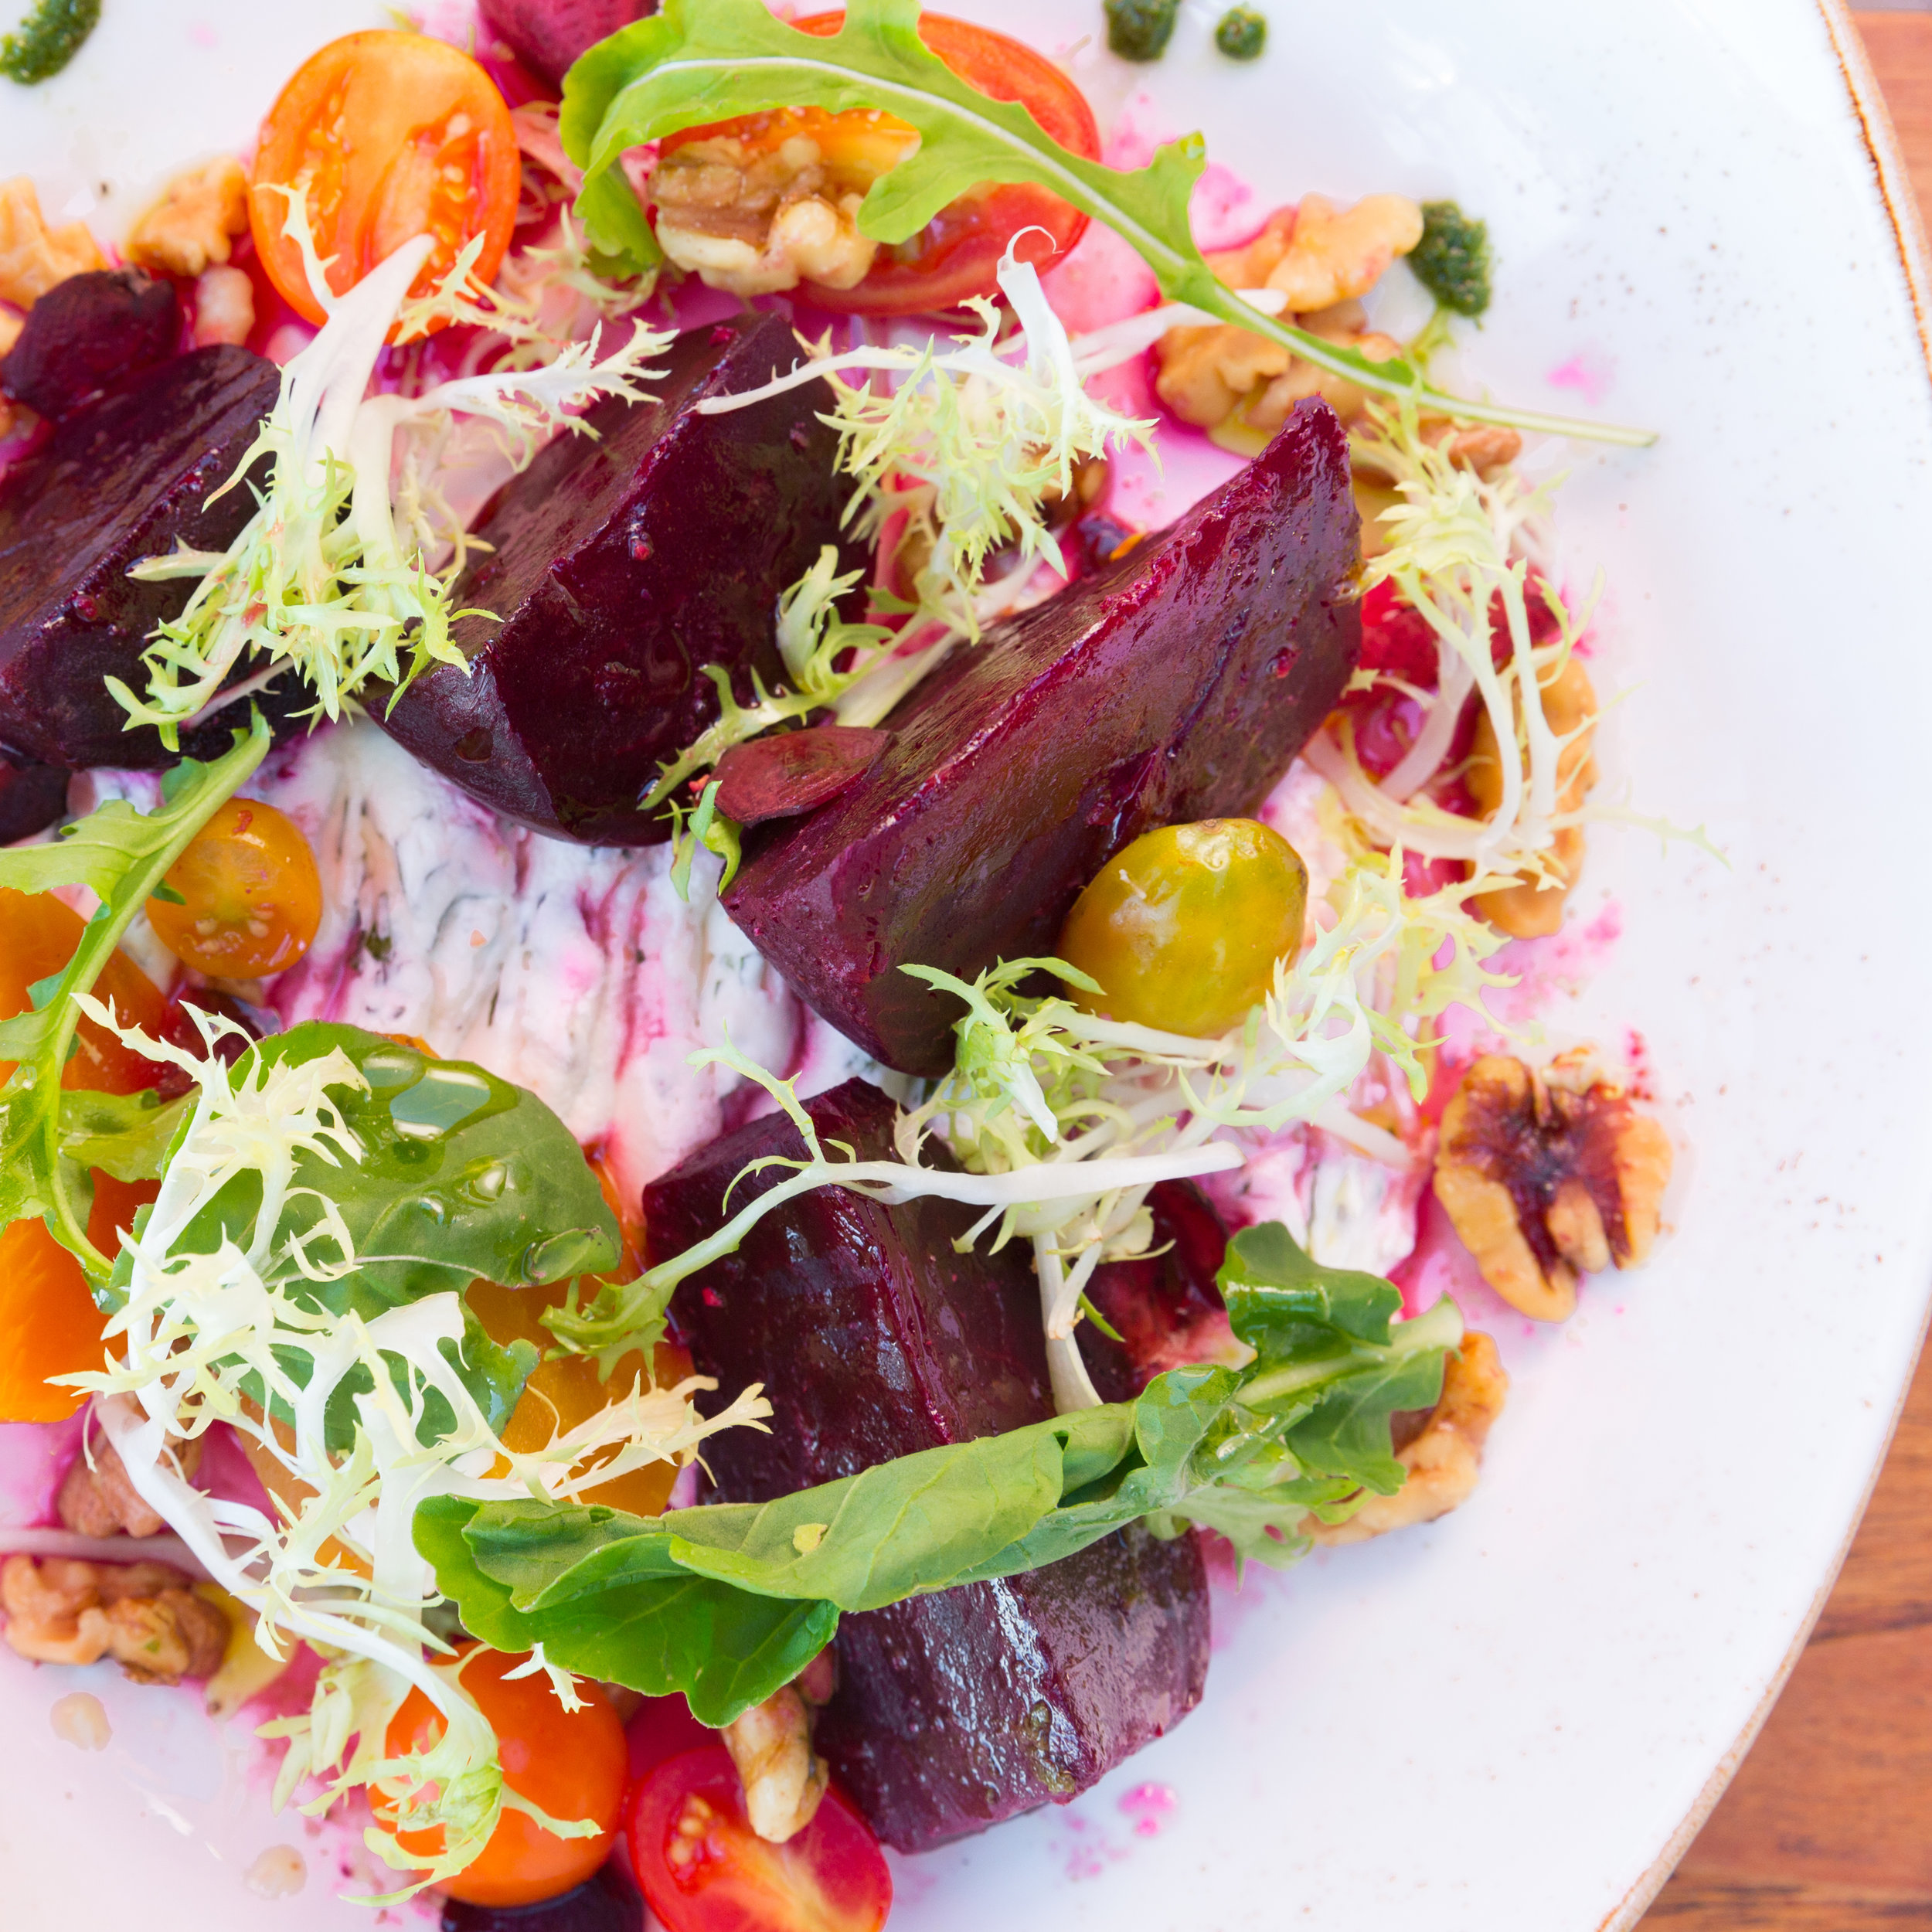 Roy's Beach House_Sweet Up-Country Beets | Goat Cheese,Toasted Walnut, Pomegranate Emulsion -__pc Craig Bixel_07-2017.jpg